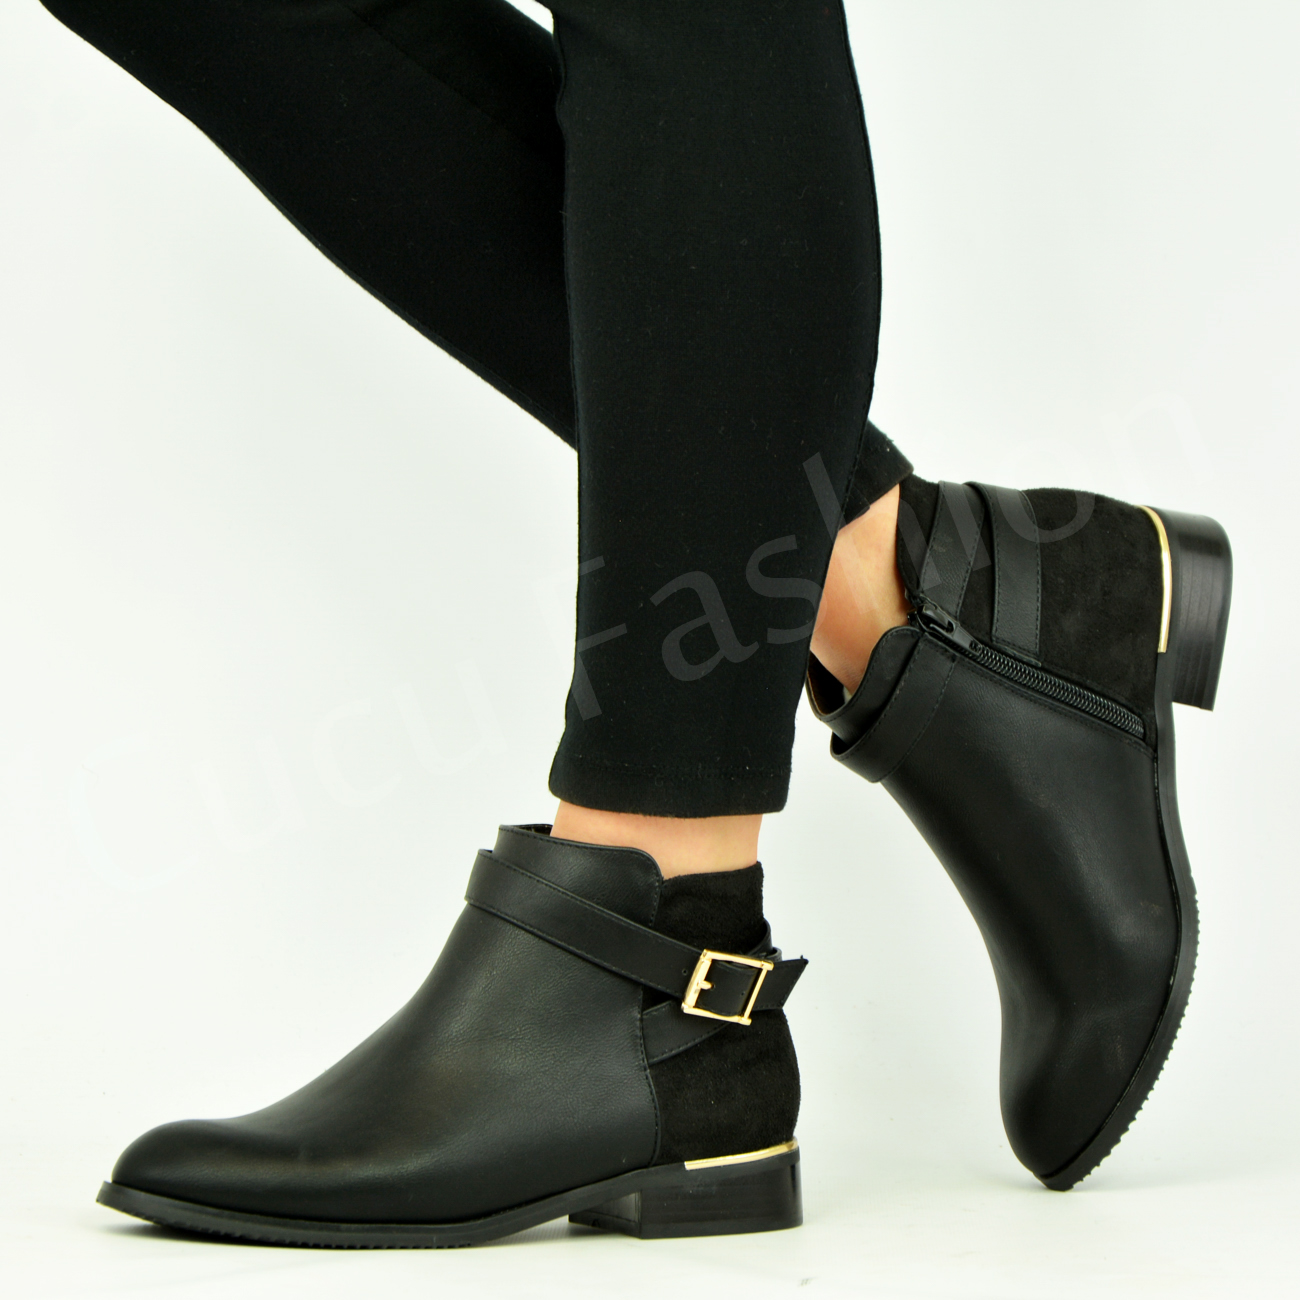 Low Heel Occasion Shoes Uk